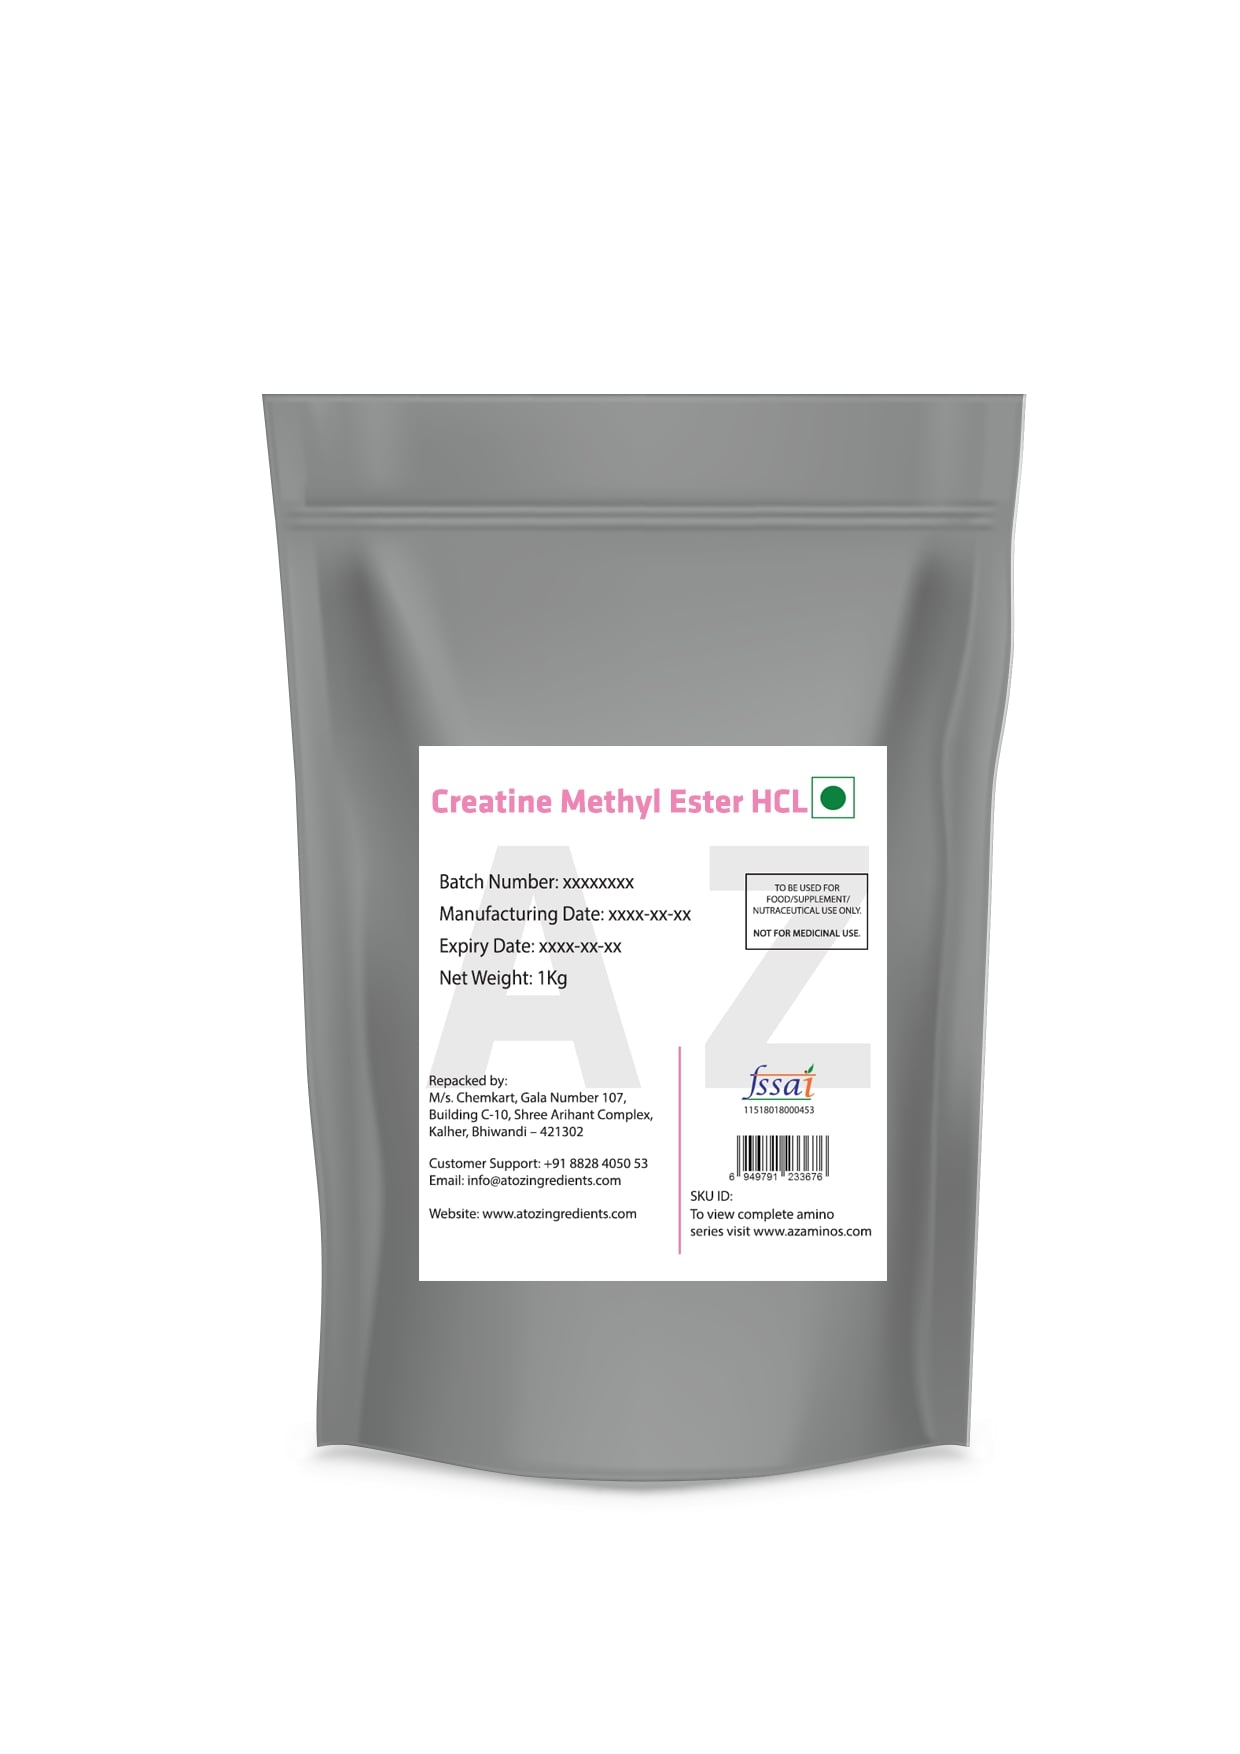 Creatine Methyl Ester HCL